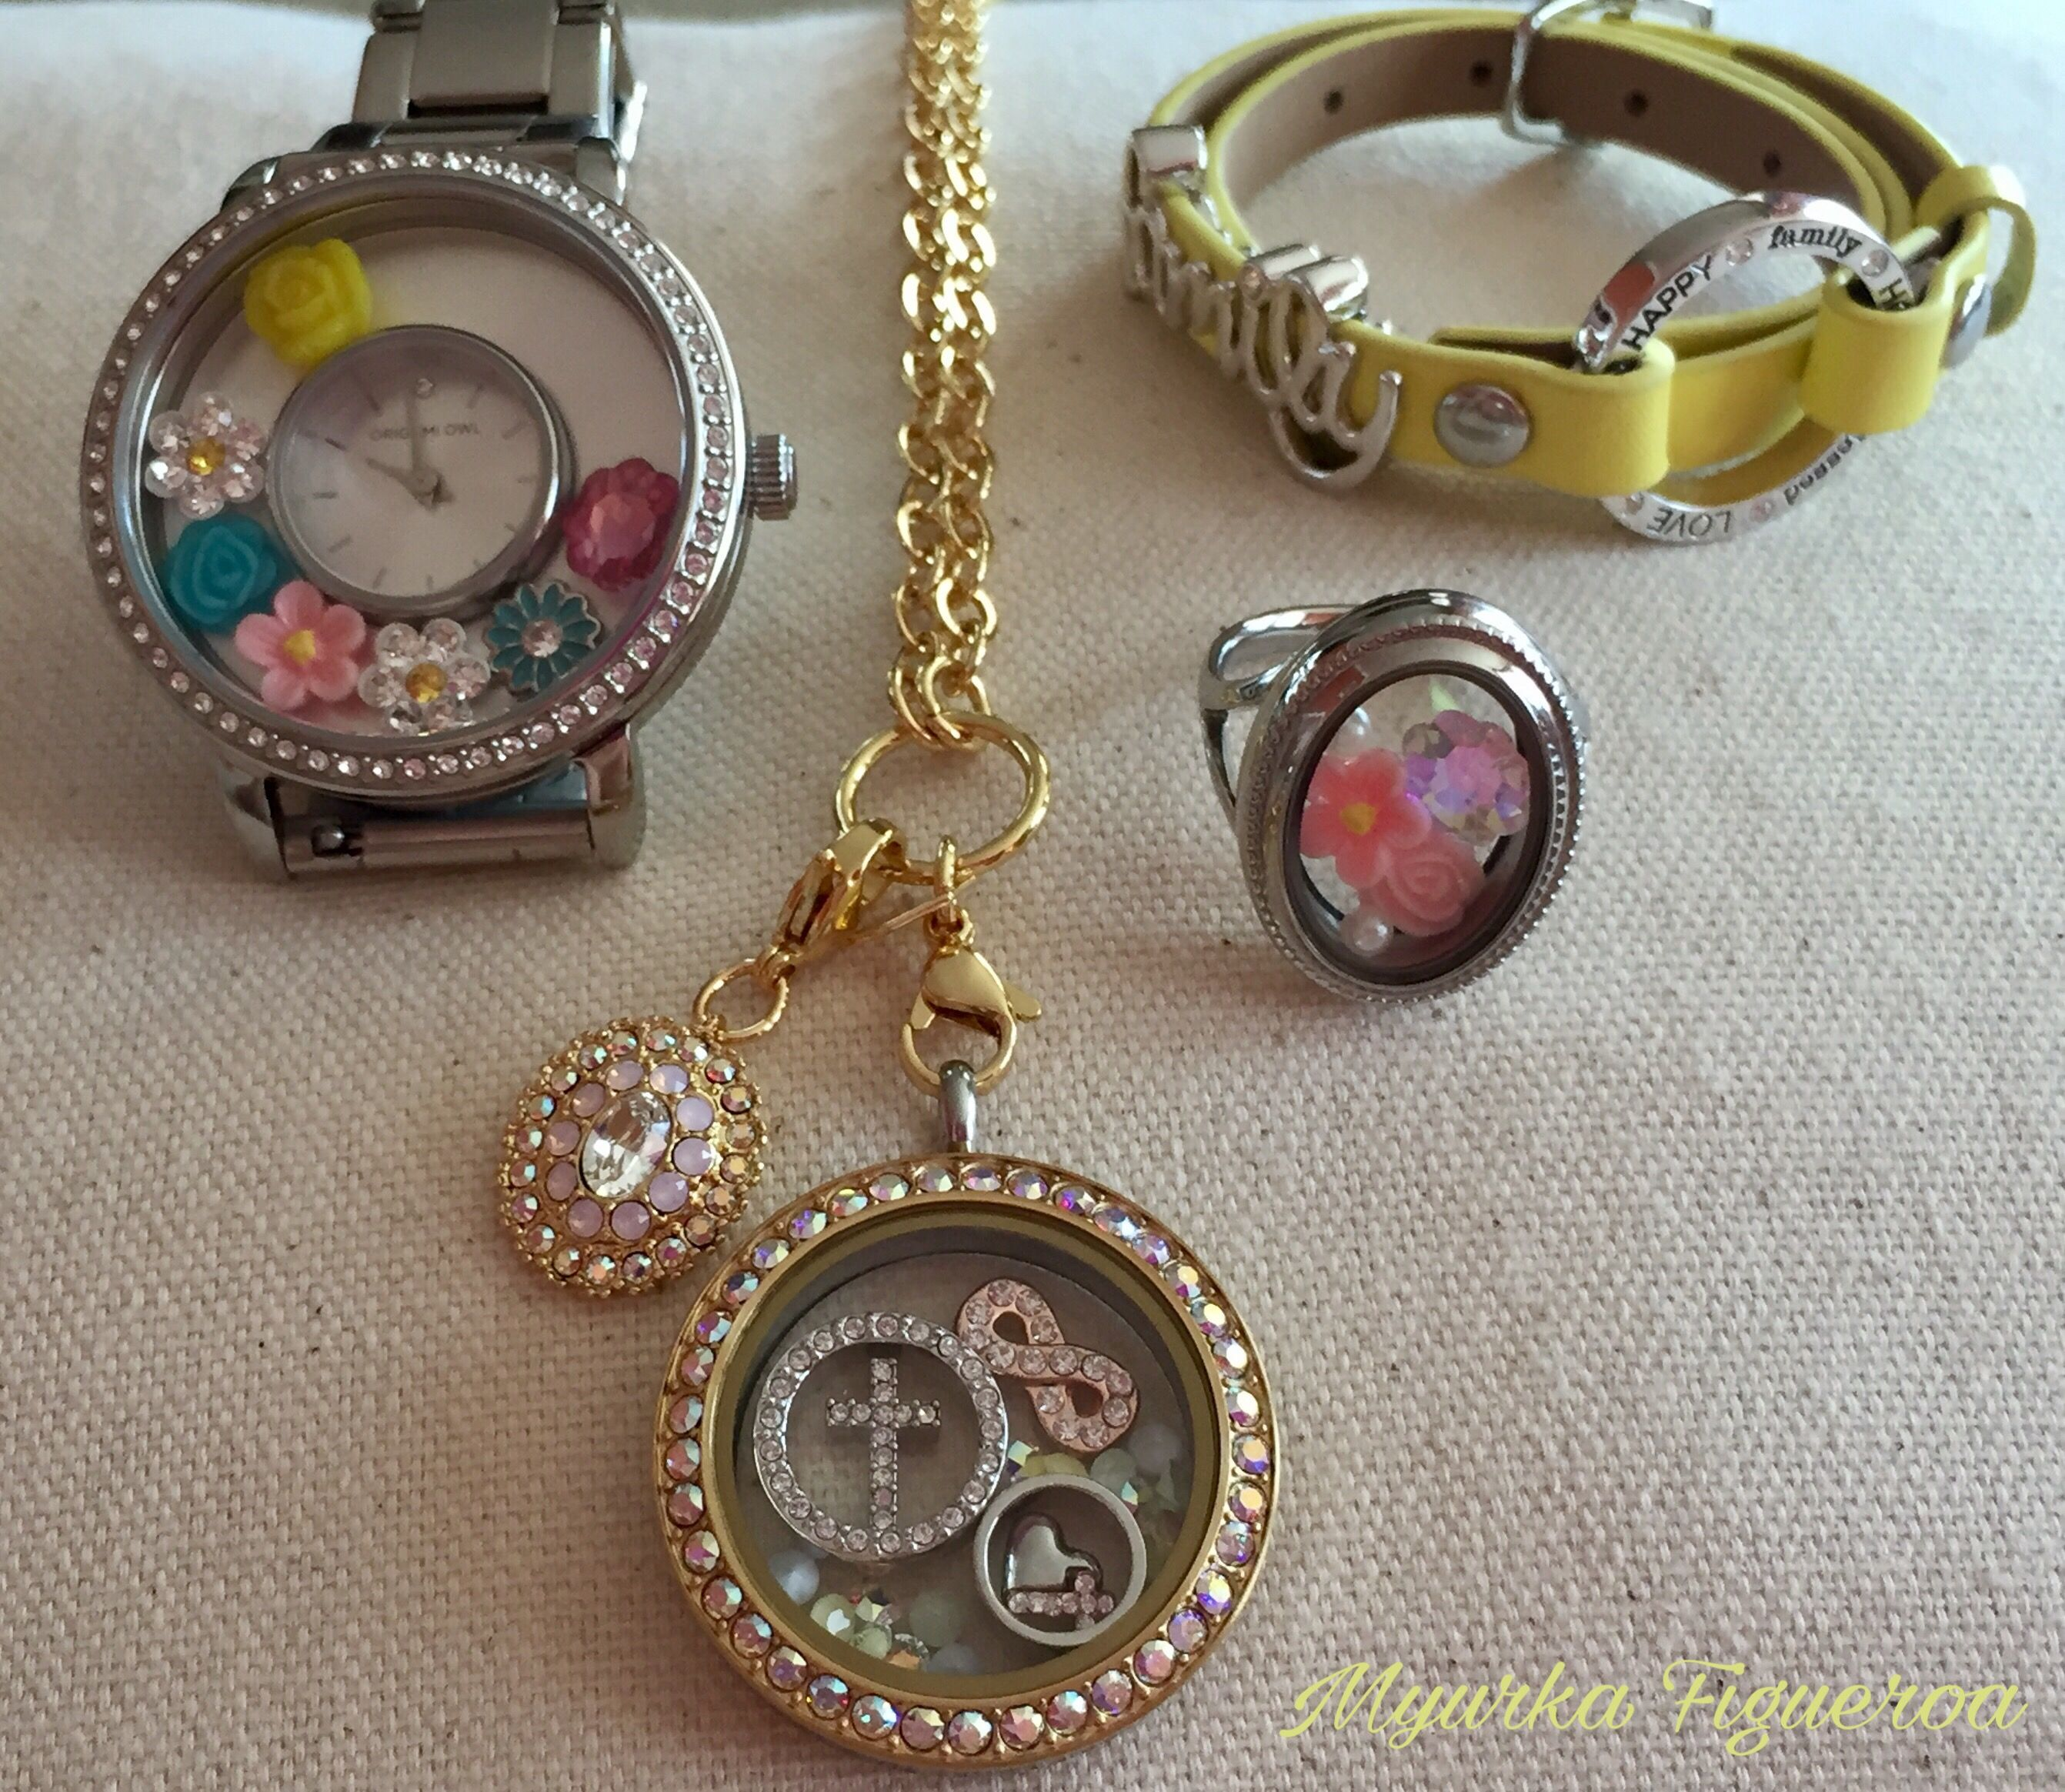 watch with old retro review goes lust apple bucardo school x pocket lockets list locket